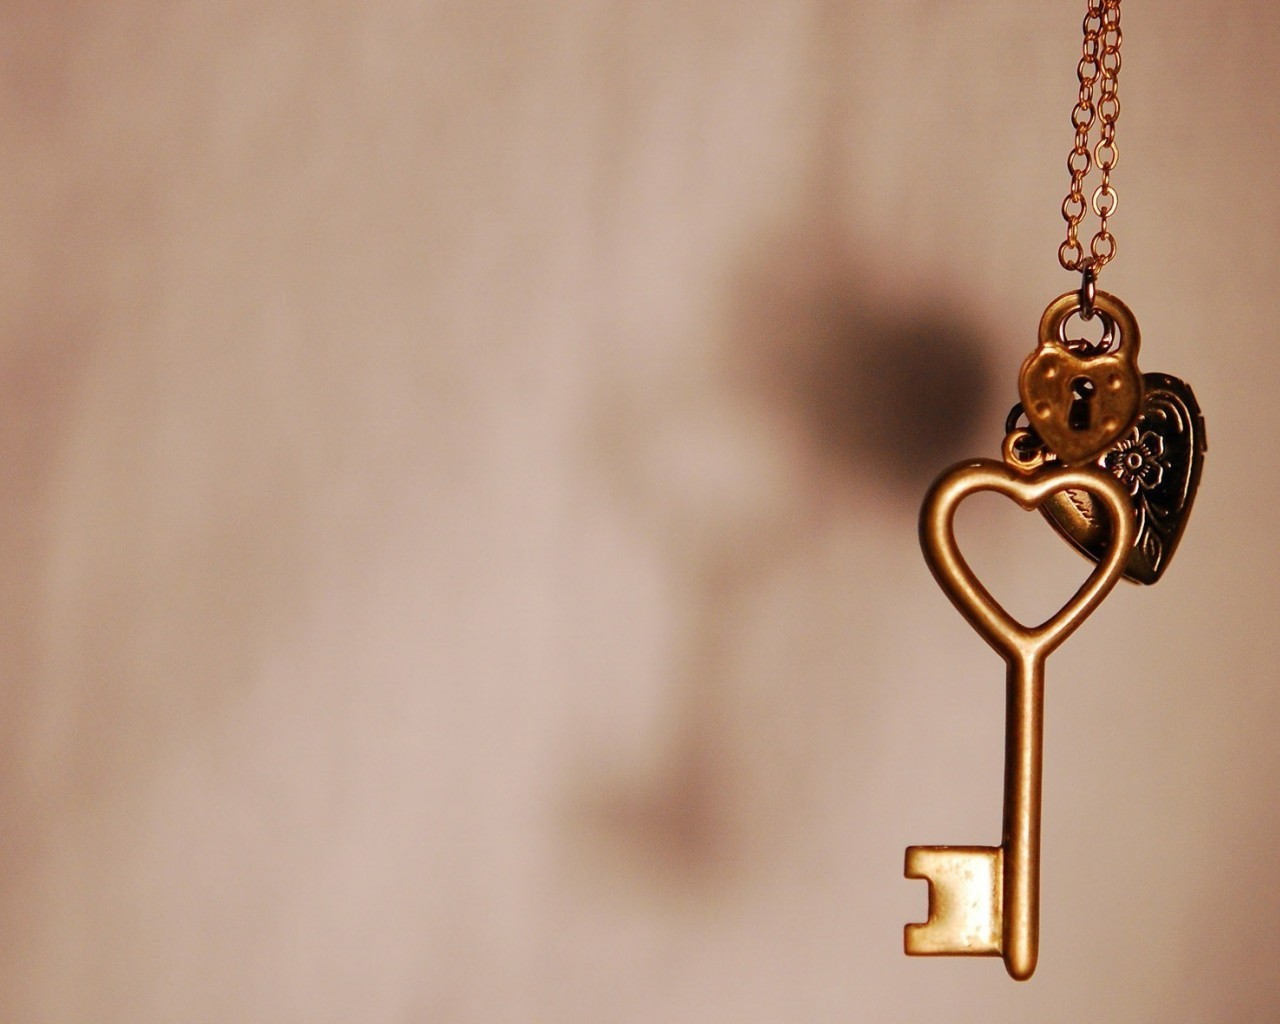 22482 download wallpaper Hearts, Objects, Love, Jewelry screensavers and pictures for free